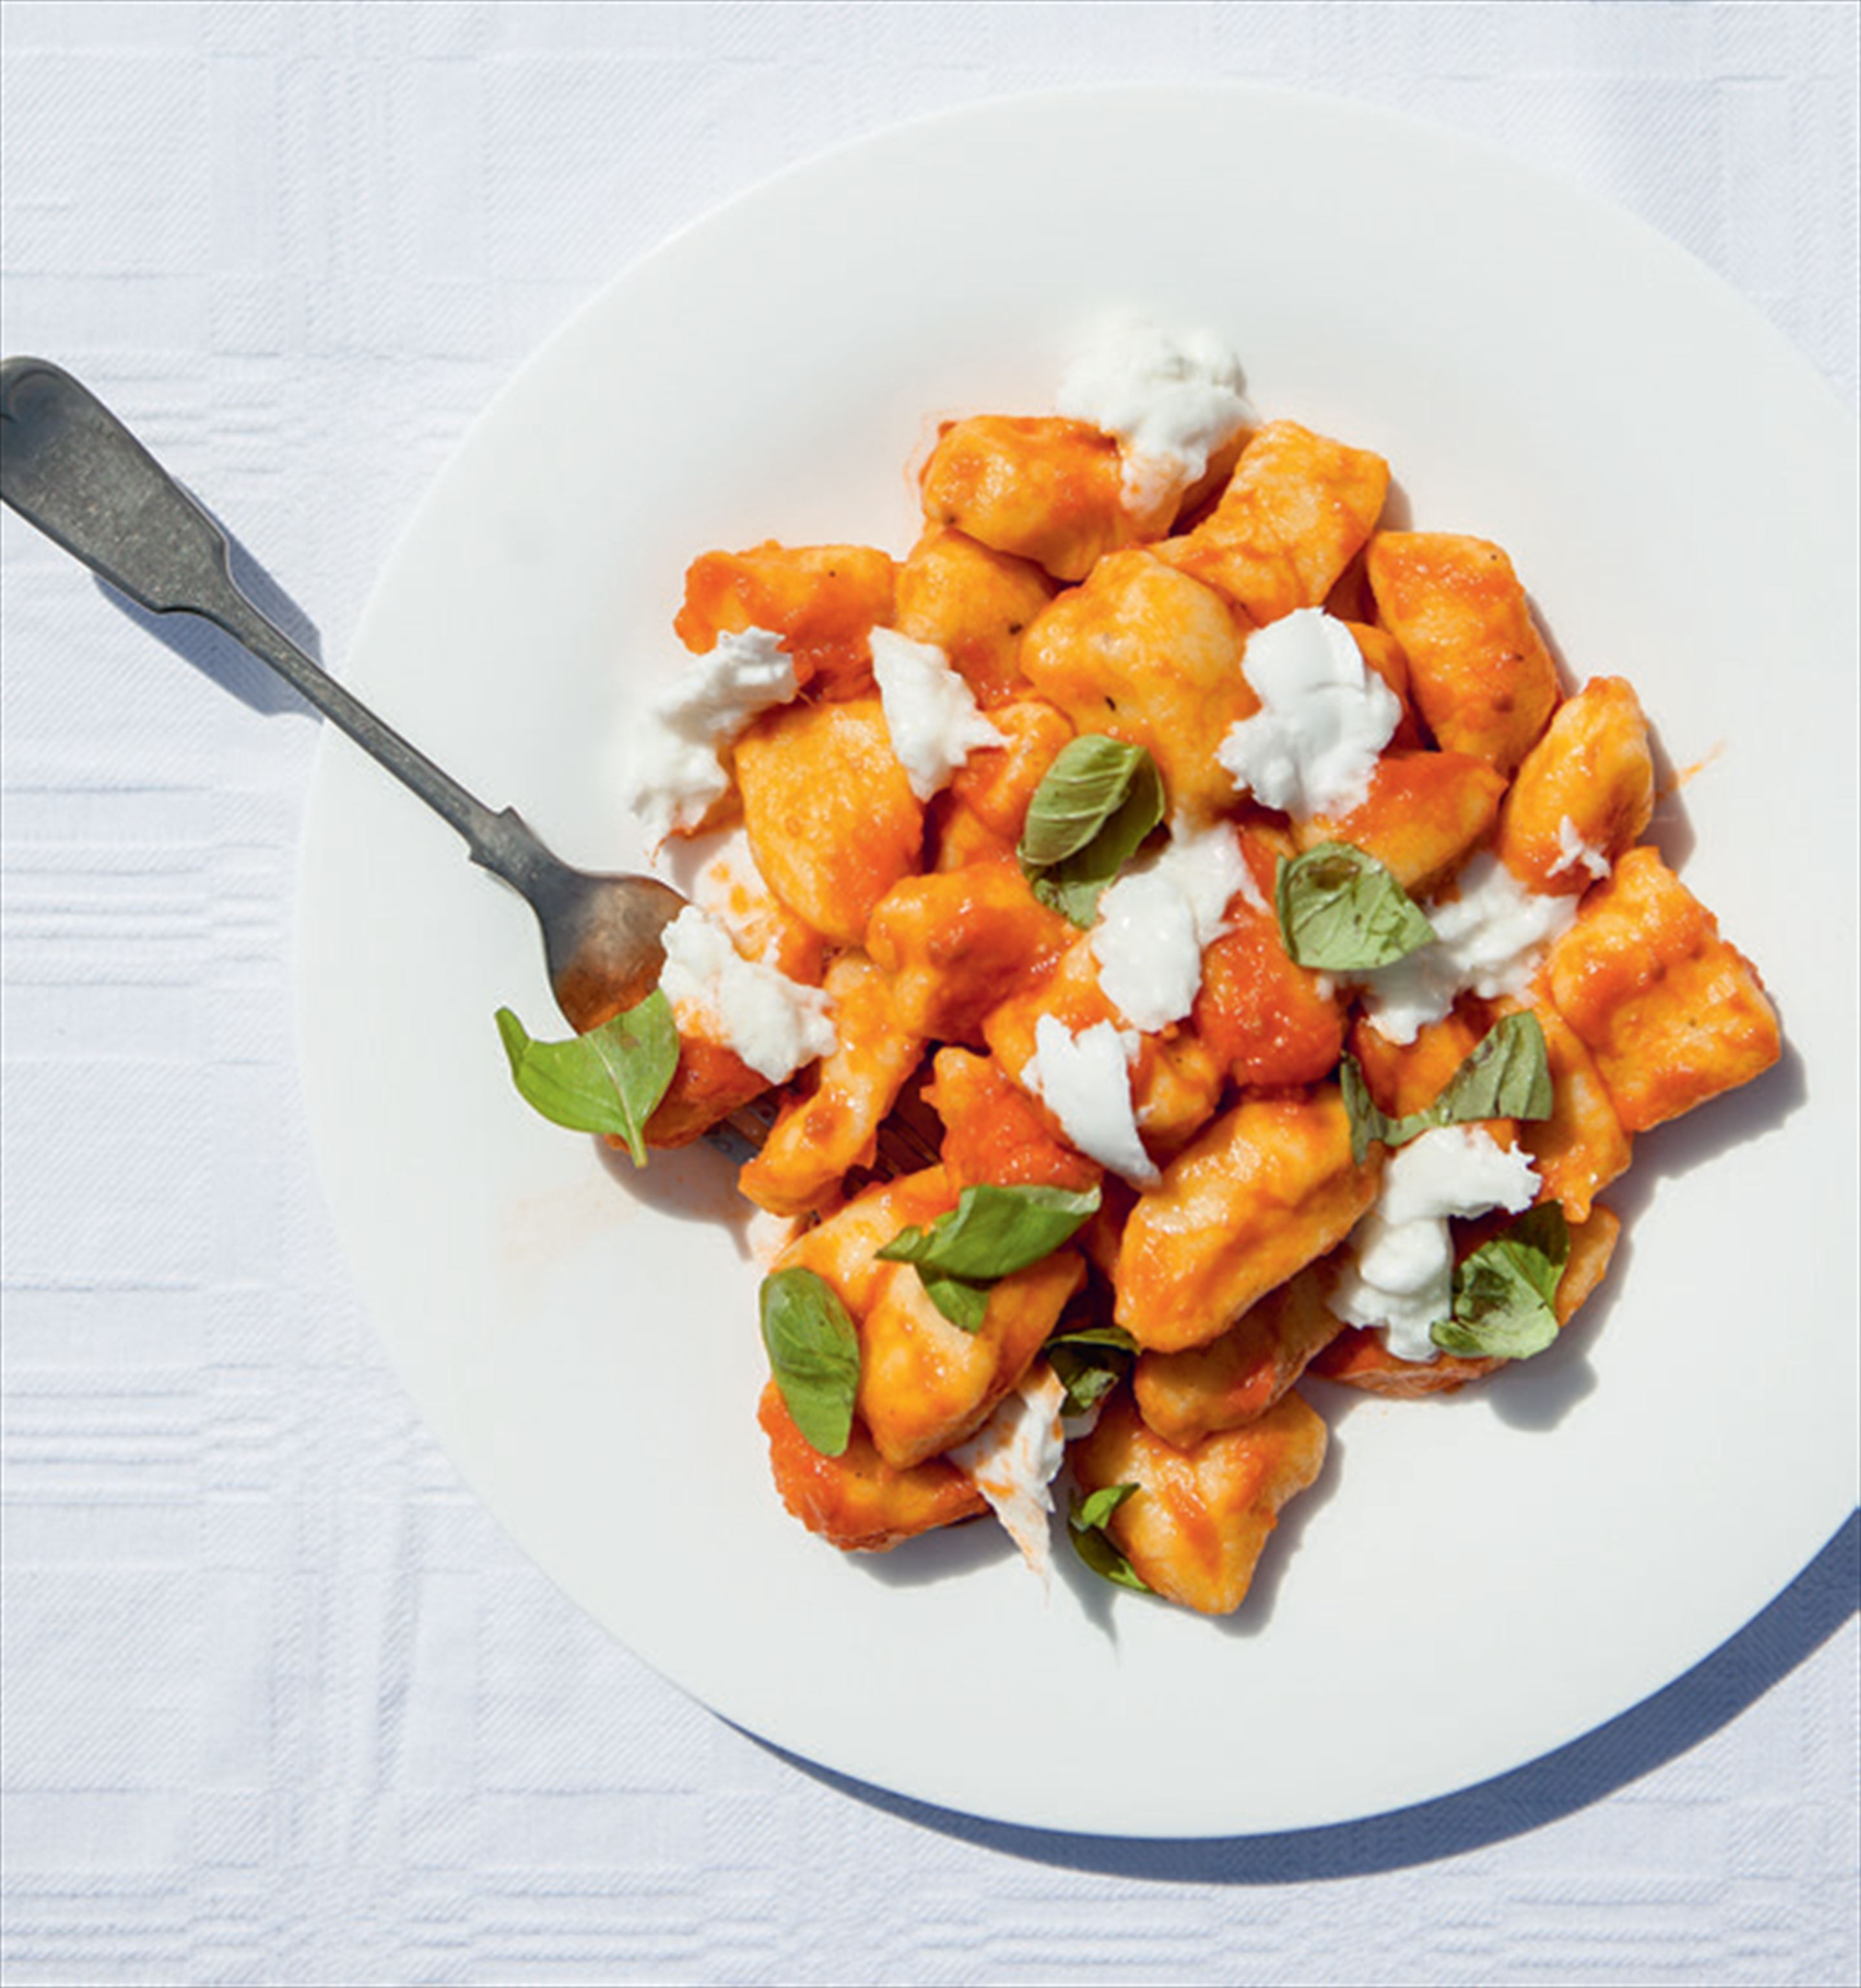 Potato gnocchi with tomato sauce, mozzarella & basil